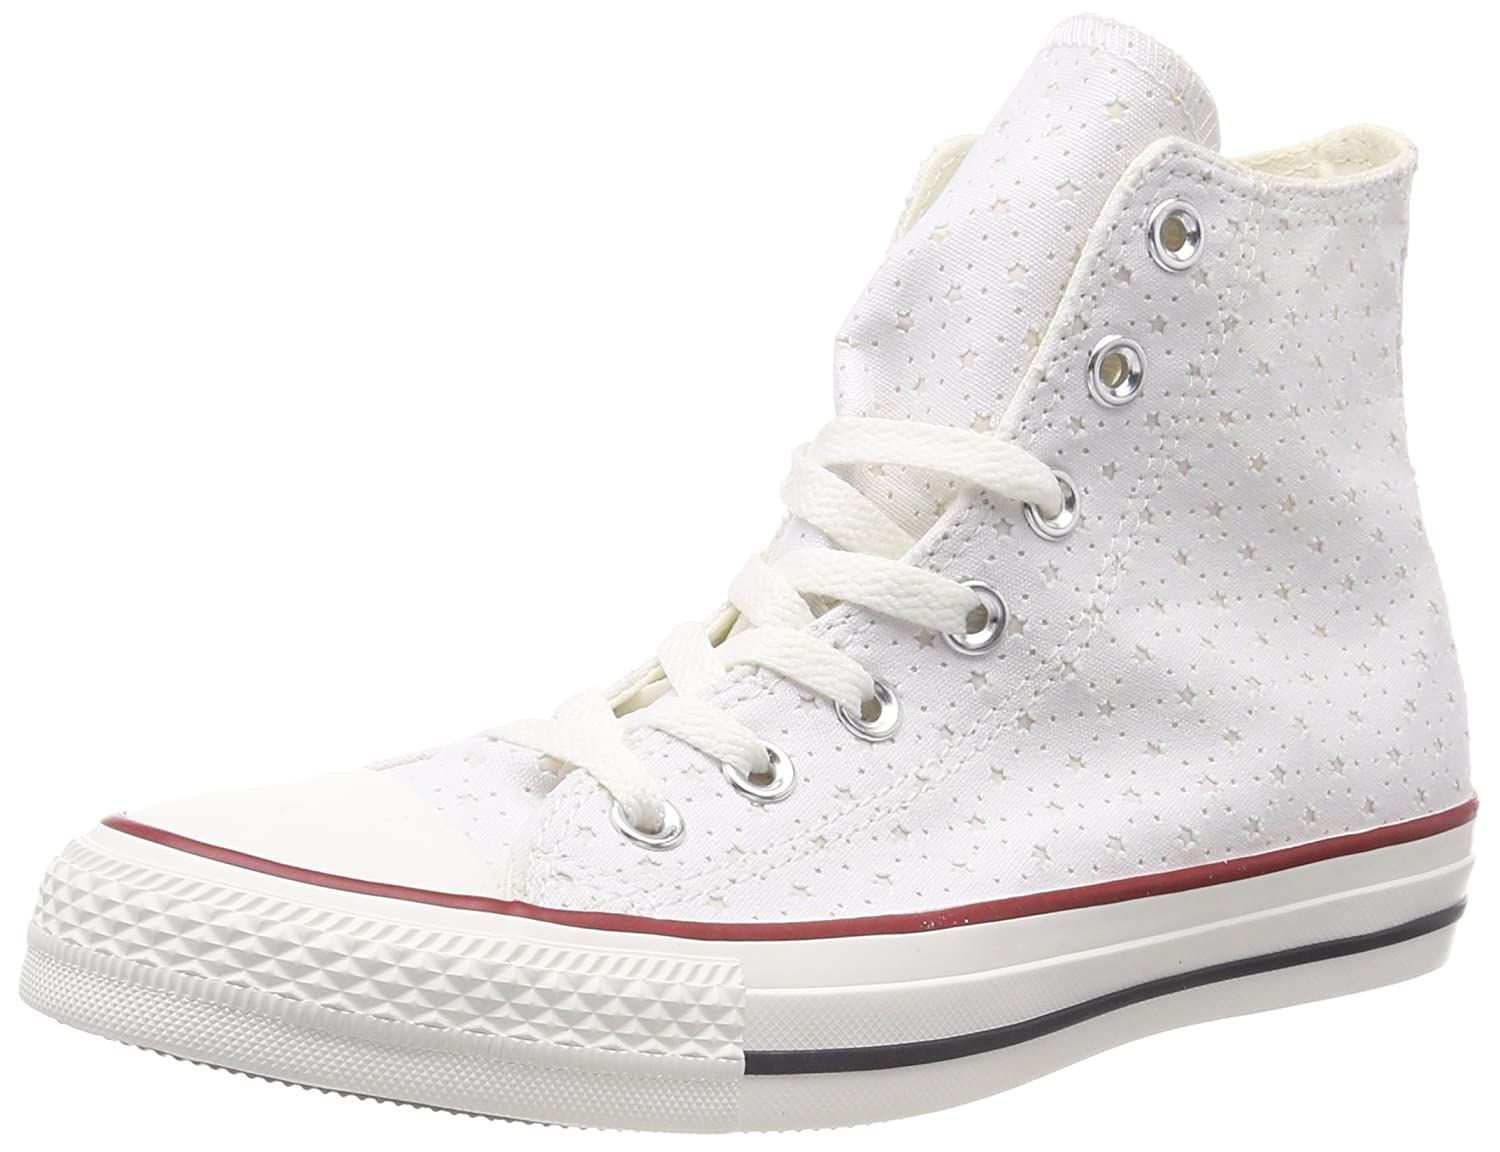 TALLA 35 EU. Converse CTAS Hi White/Garnet/Athletic Navy, Zapatillas Altas Unisex Adulto